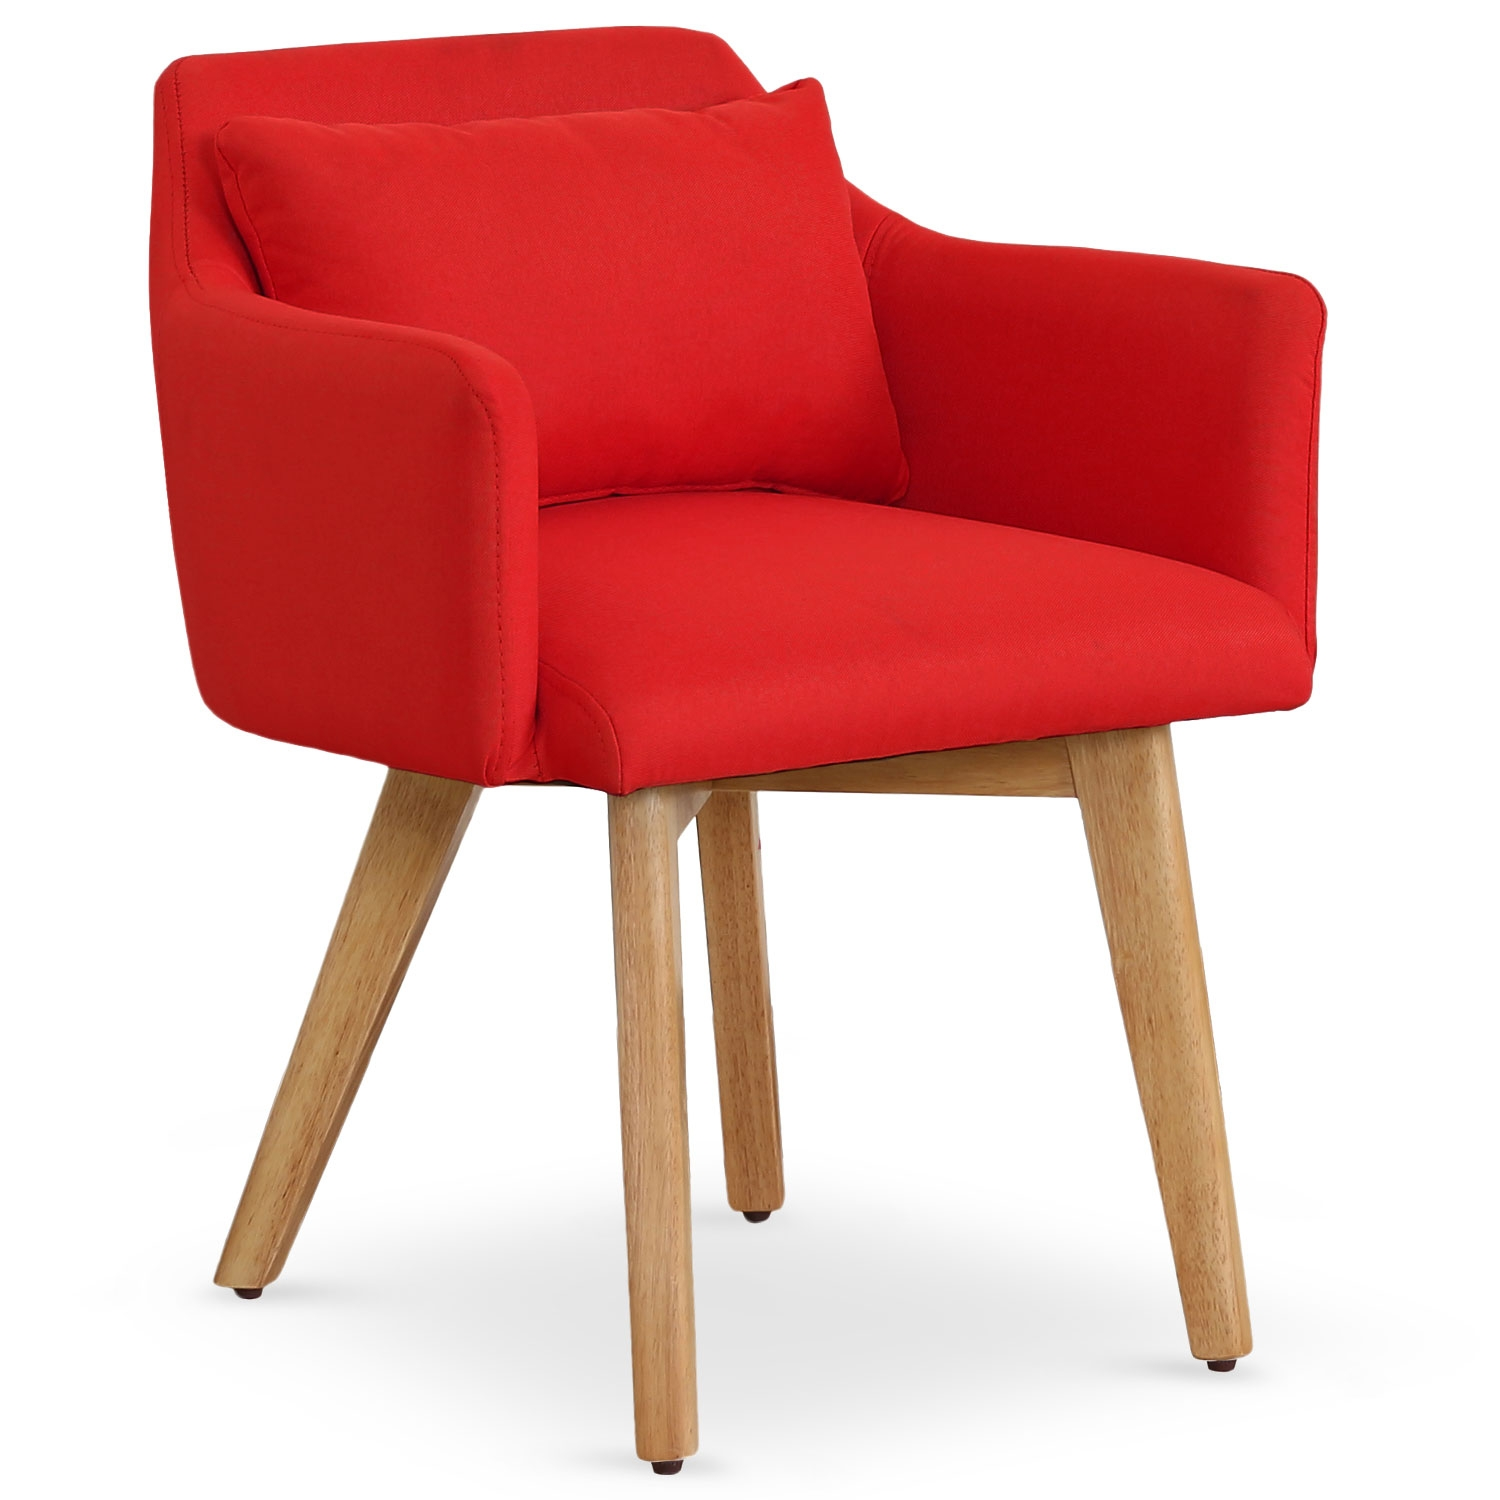 Chaise / Fauteuil scandinave Gybson Tissu Rouge